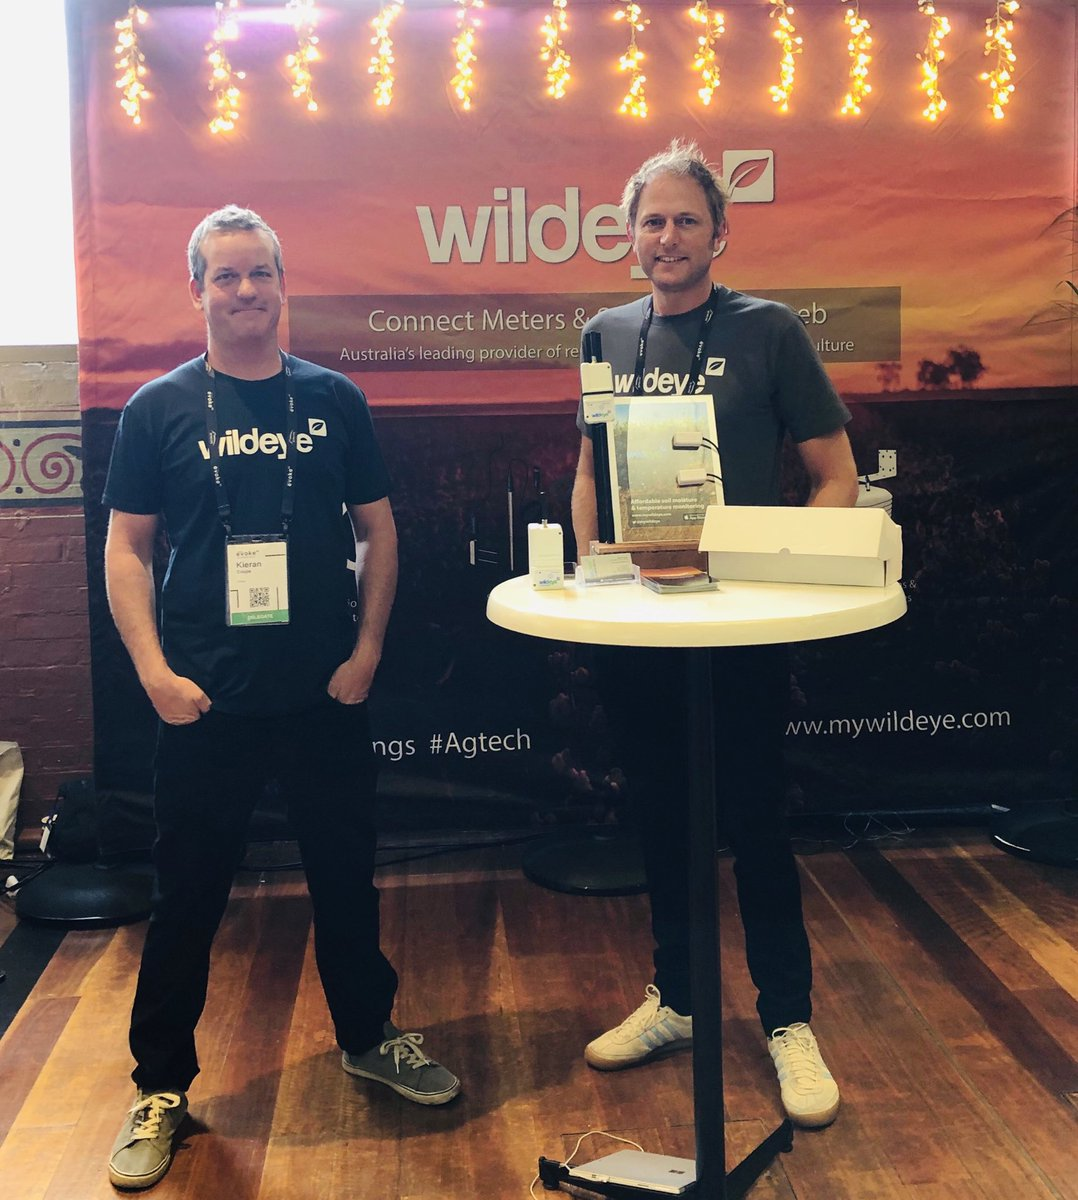 Wildeye use Internet of things (IoT) to deliver practical insights to farmers for yield improvements & management of water use. Visit the awesome team at their evokeAG stand to learn more. @mywildeye #evokeAG  #IoT